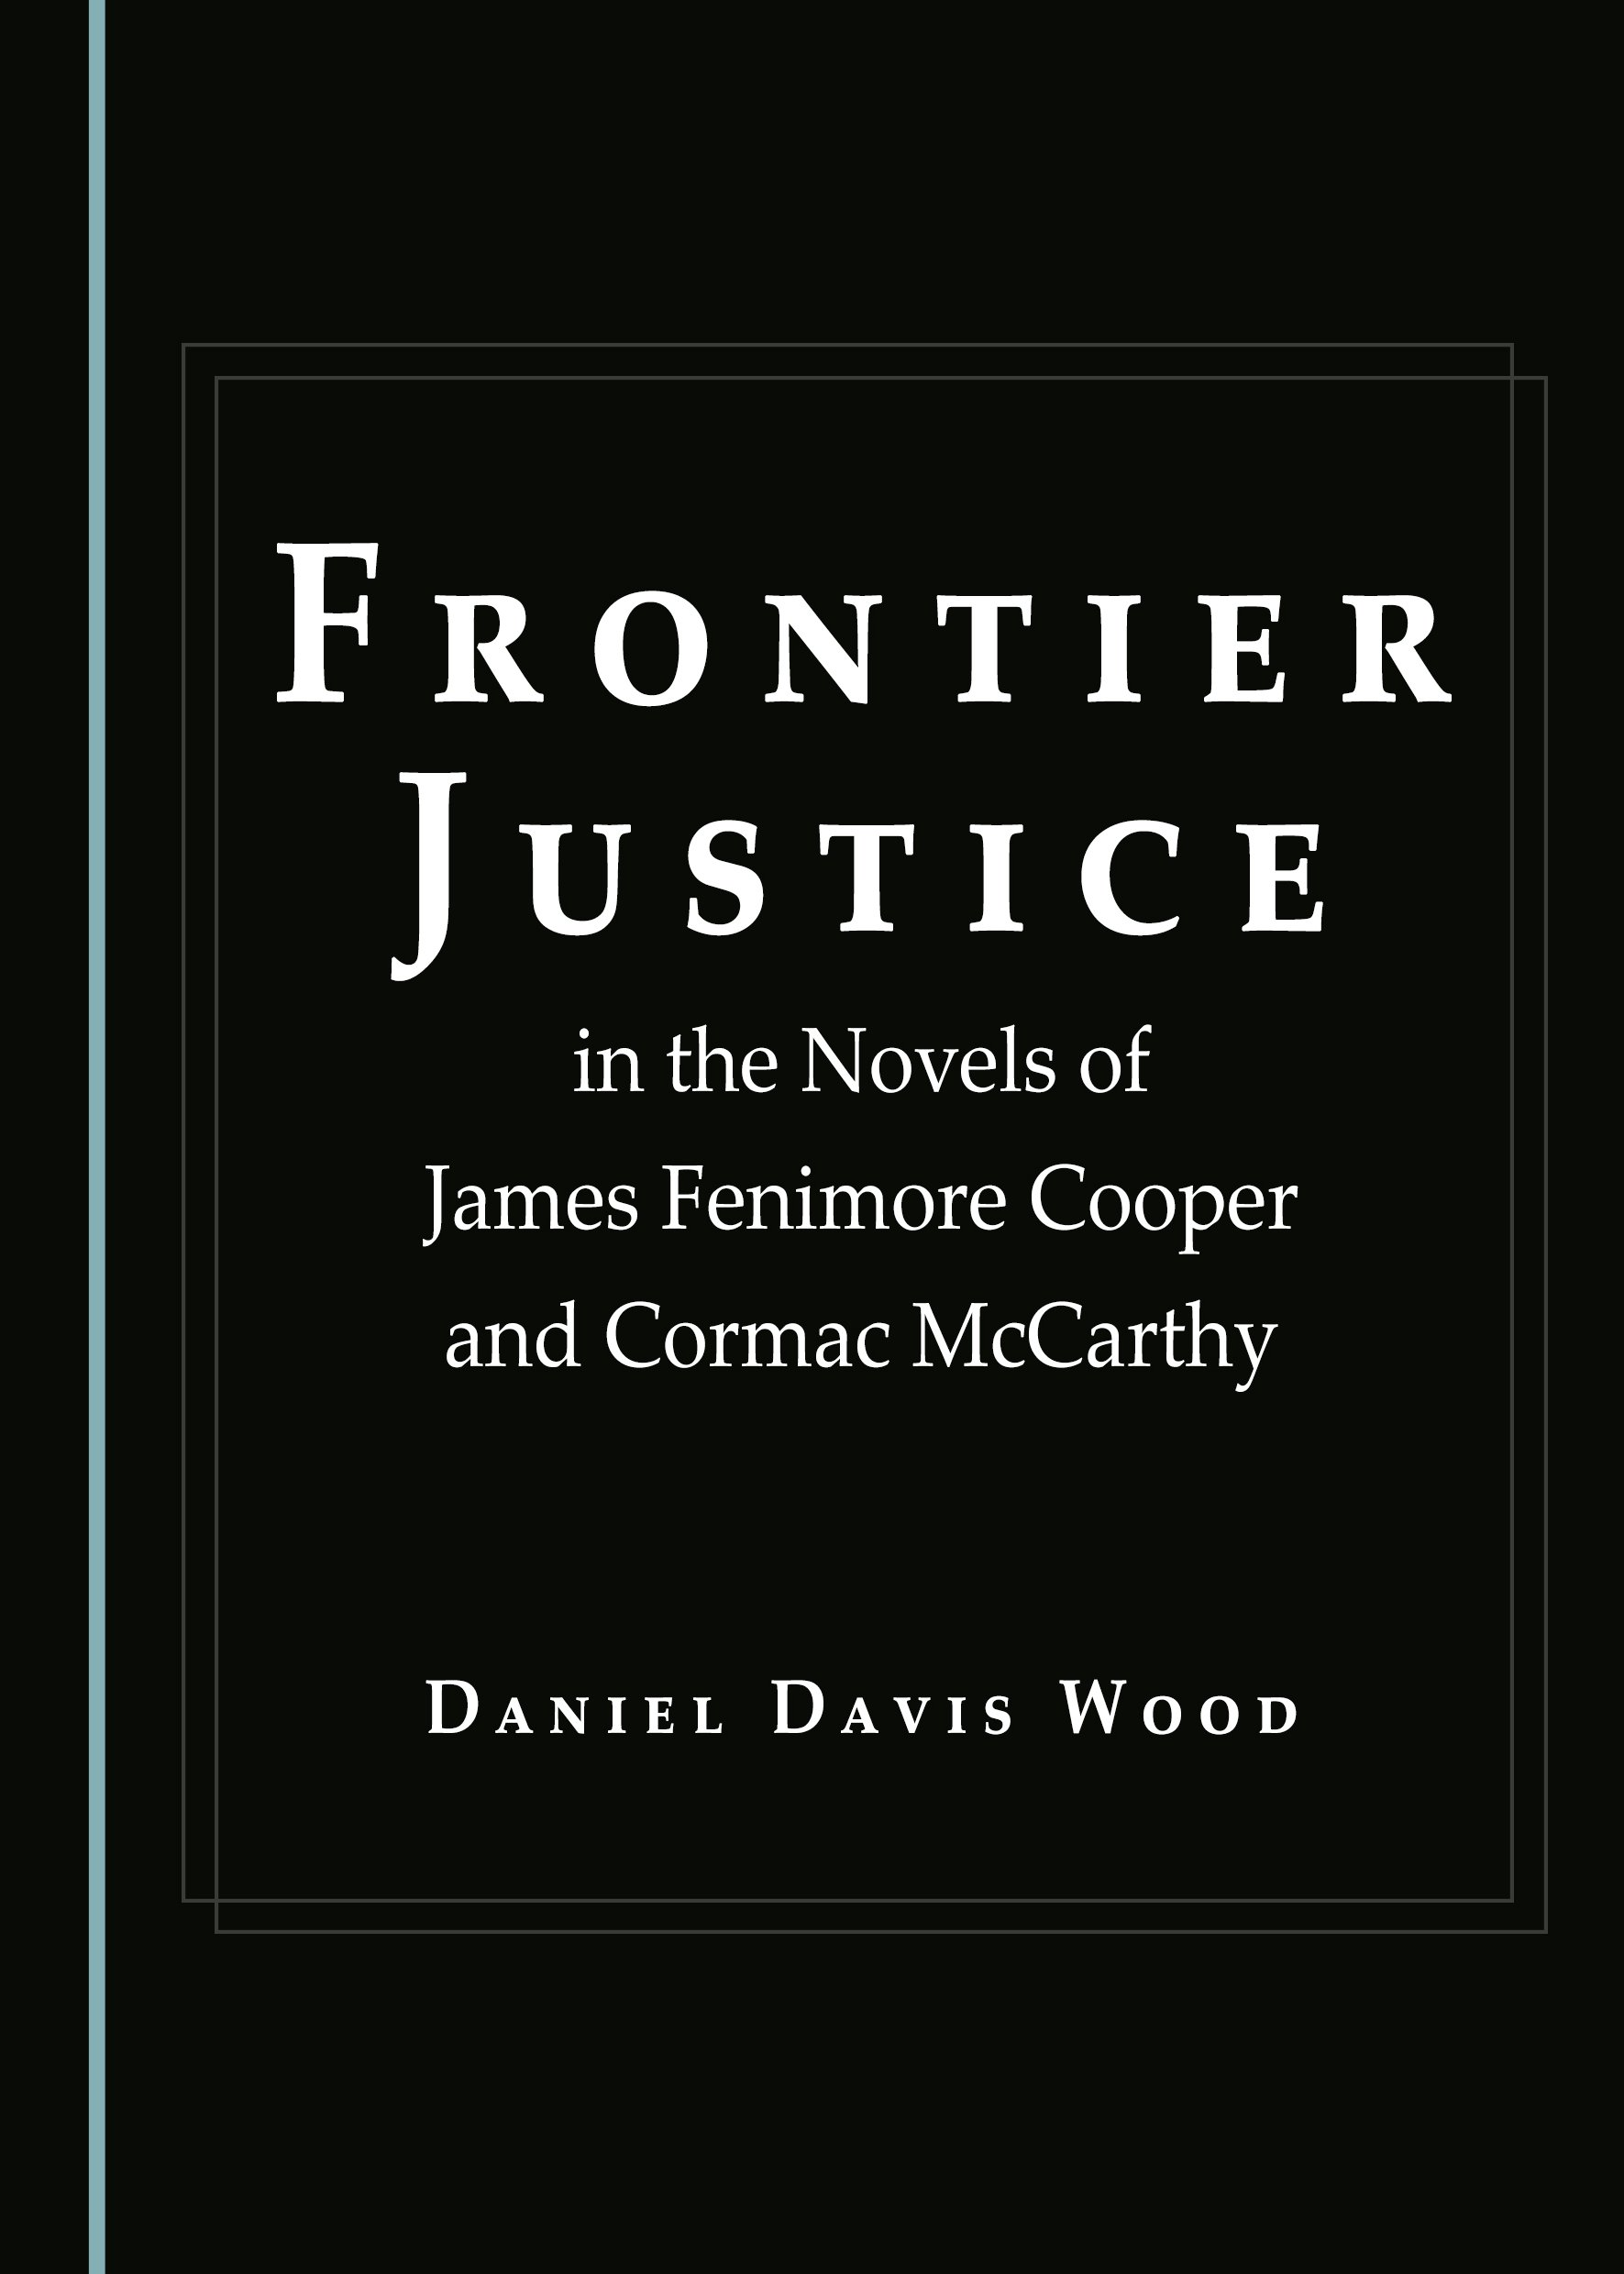 Frontier Justice in the Novels of James Fenimore Cooper and Cormac McCarthy